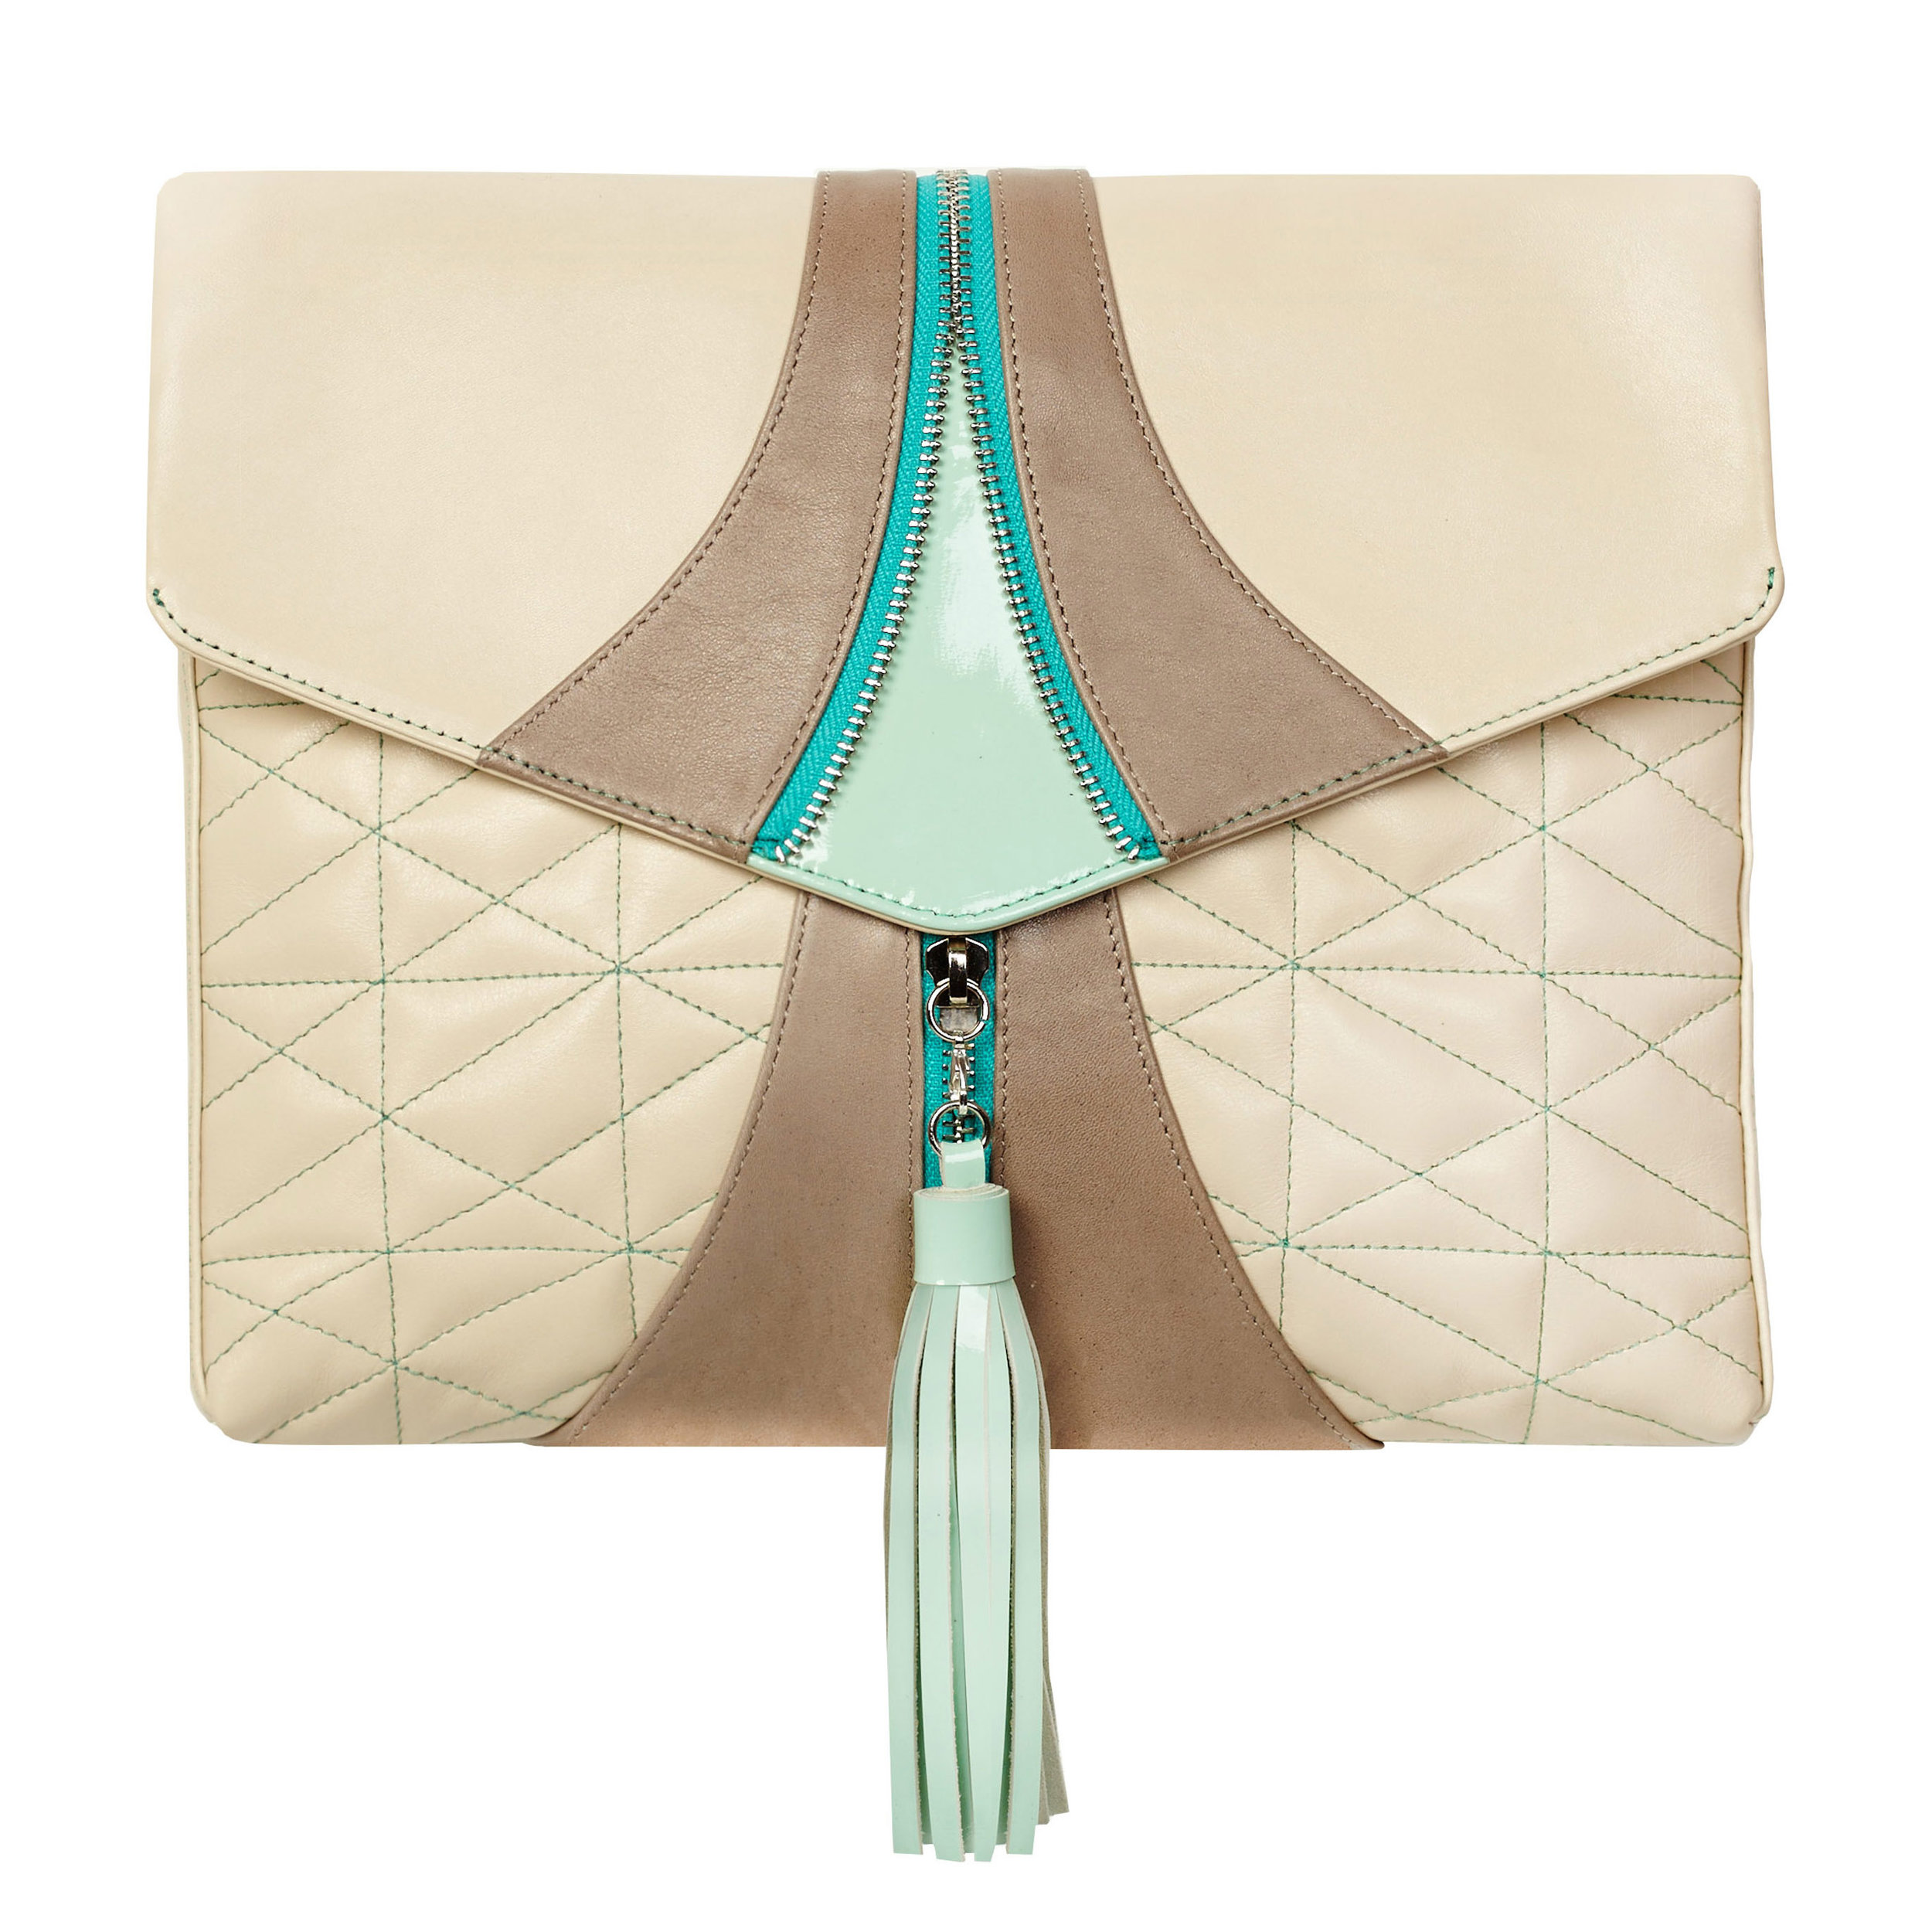 Luxe Beige | Soft Brown +Dazzling Mint - $445.00